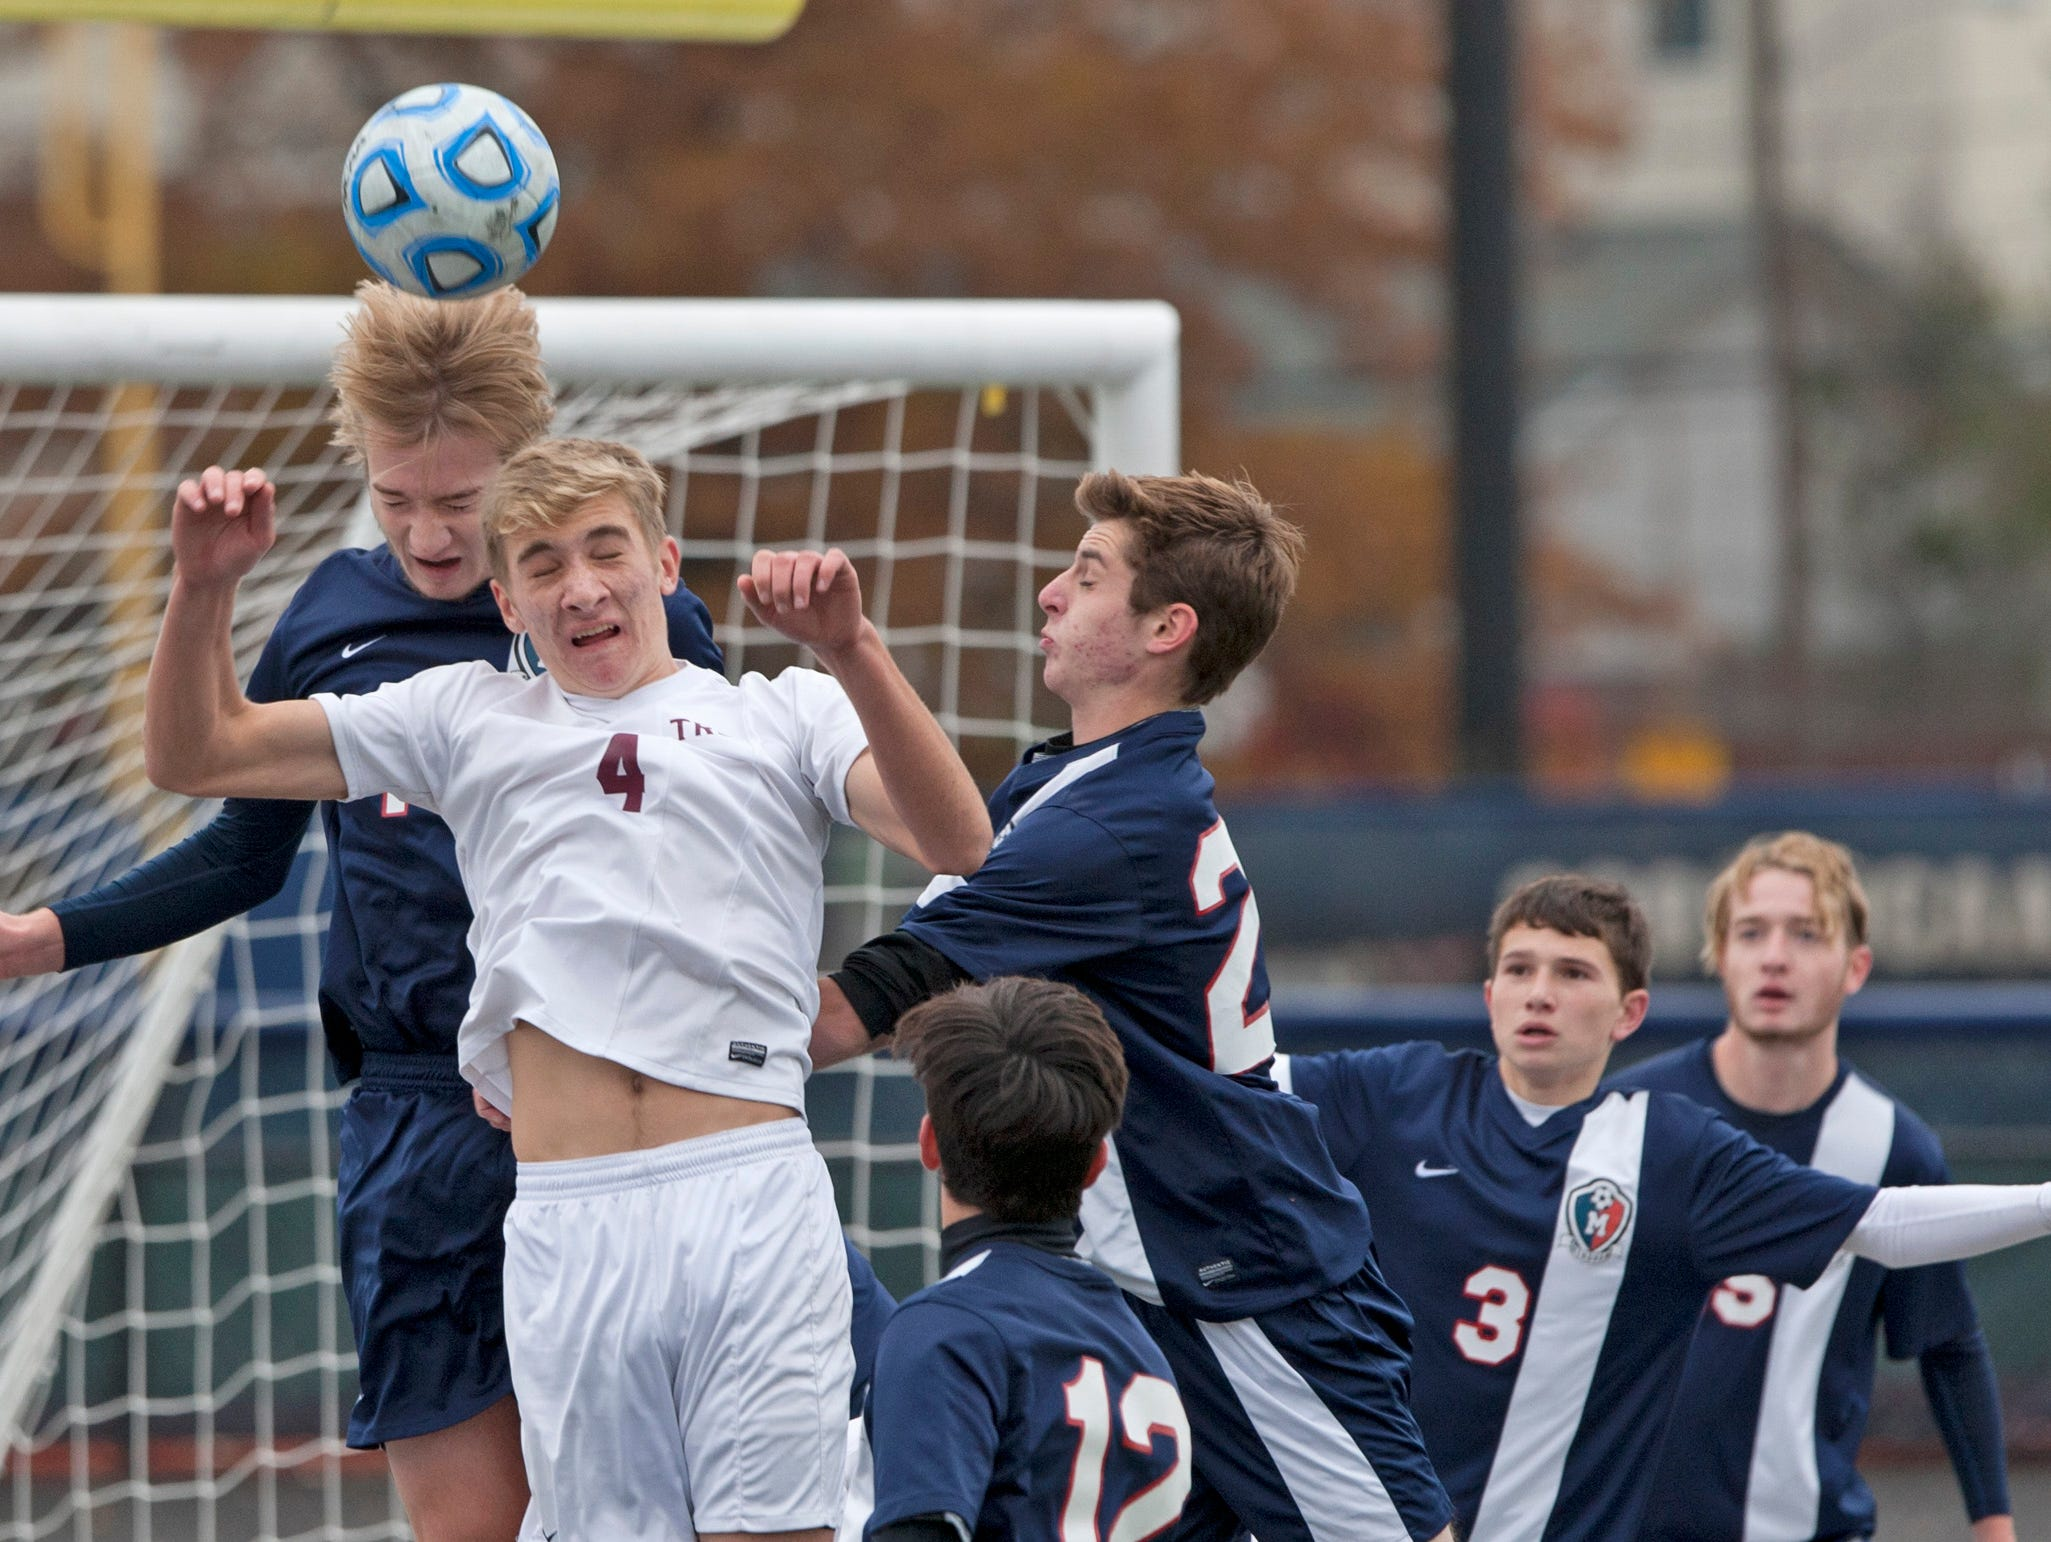 Toms River South's Mike Tapp tries to head ball towards goal. Toms River South Boys Soccer vs West Morris Mendham in NJSIAA State Group III Championship at Kean University on November 22, 2015 in Union, NJ.